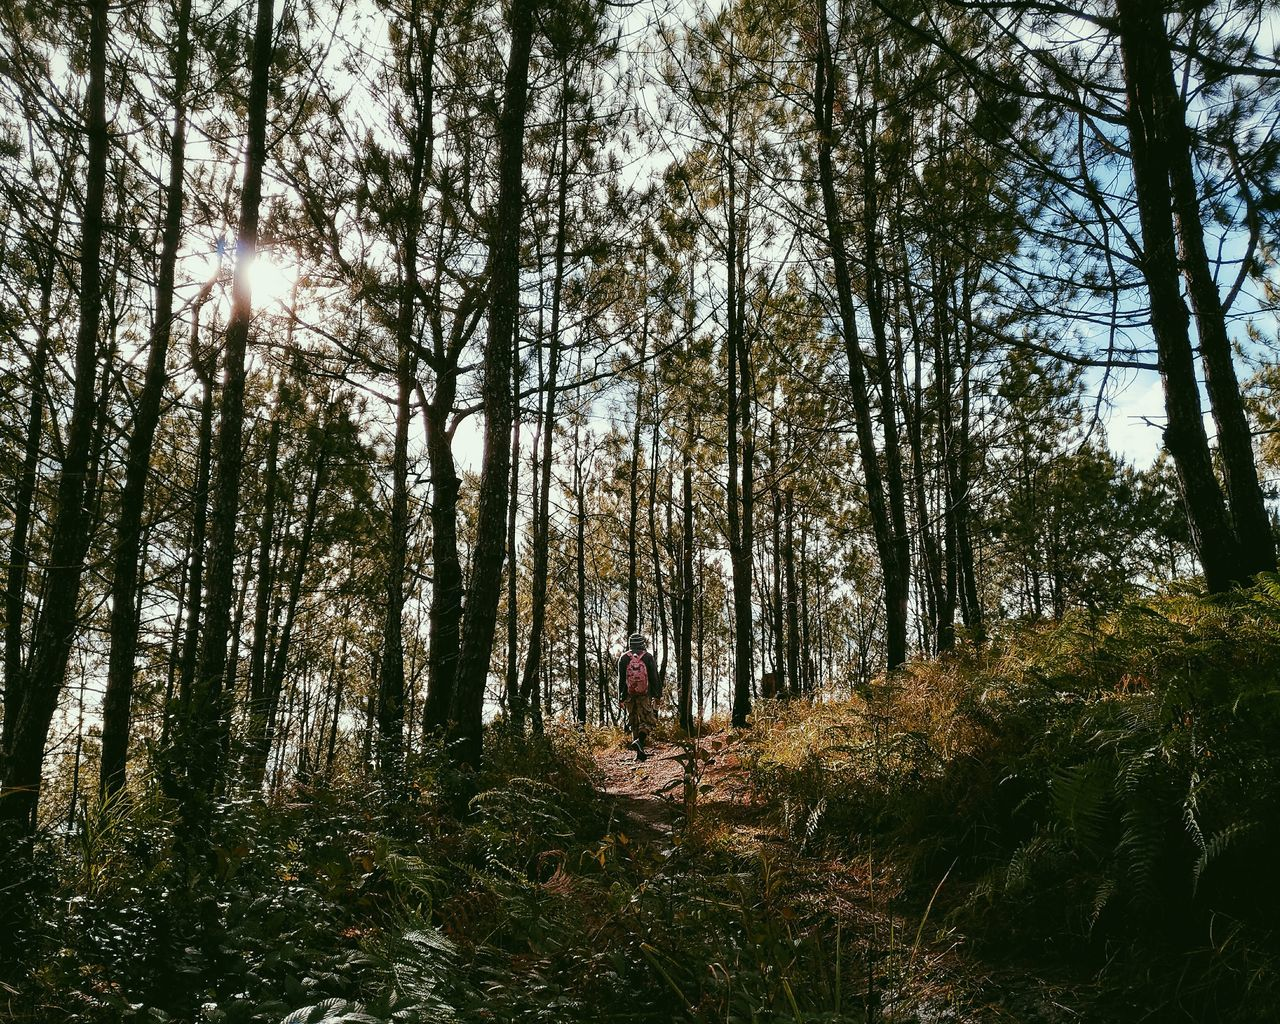 Rear View Of Person Walking Amidst Trees At Forest